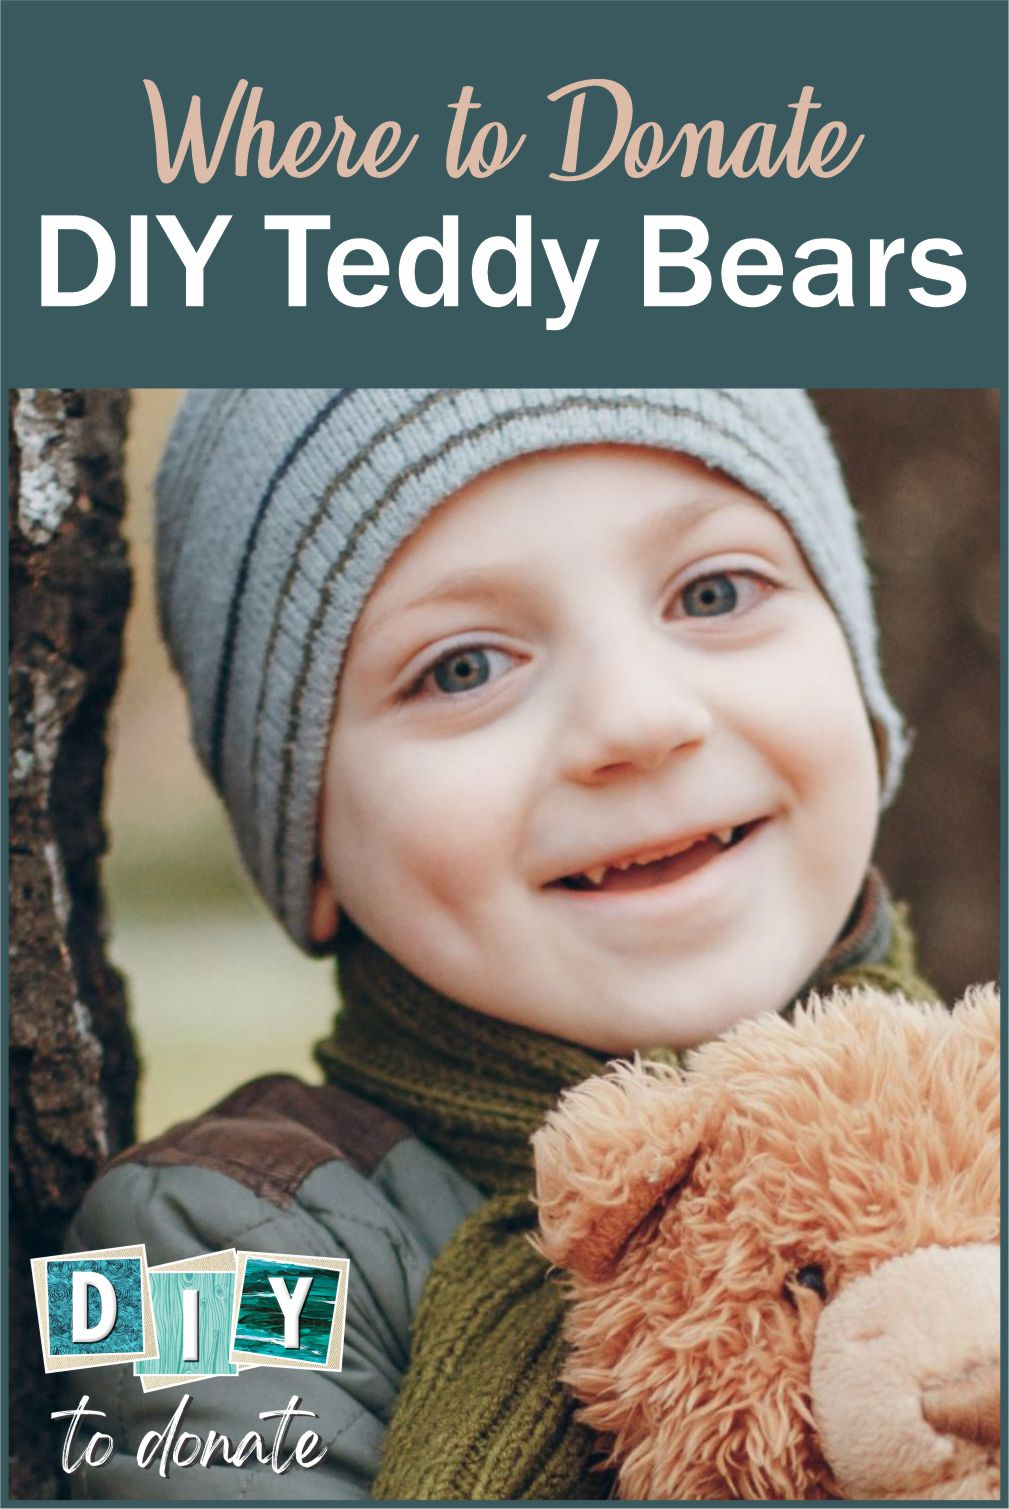 Find a charity for your handmade teddy bears and make a difference in the lives of children in transition or those with a serious illness. #diytodonate #teddies #teddybears #donateteddybears #donateteddies #diyteddybears #diy #donate #giveback #communityservice #helpkids